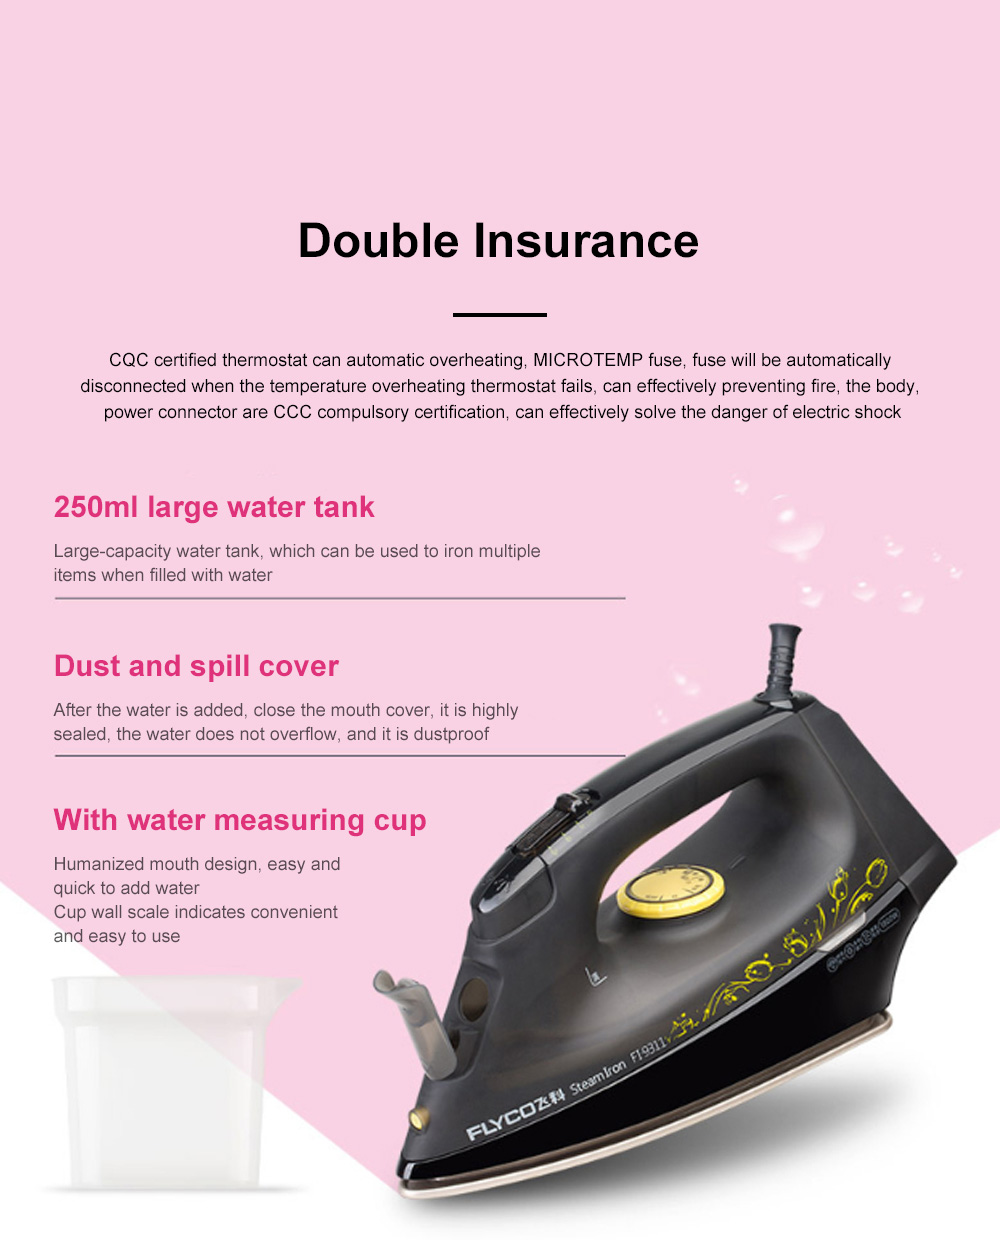 FLYCO Electric Flat Iron Auto-shut Off Anti-calcium Anti-drip Light Weight Adjustable Temperature Control Electric Steam Iron 4